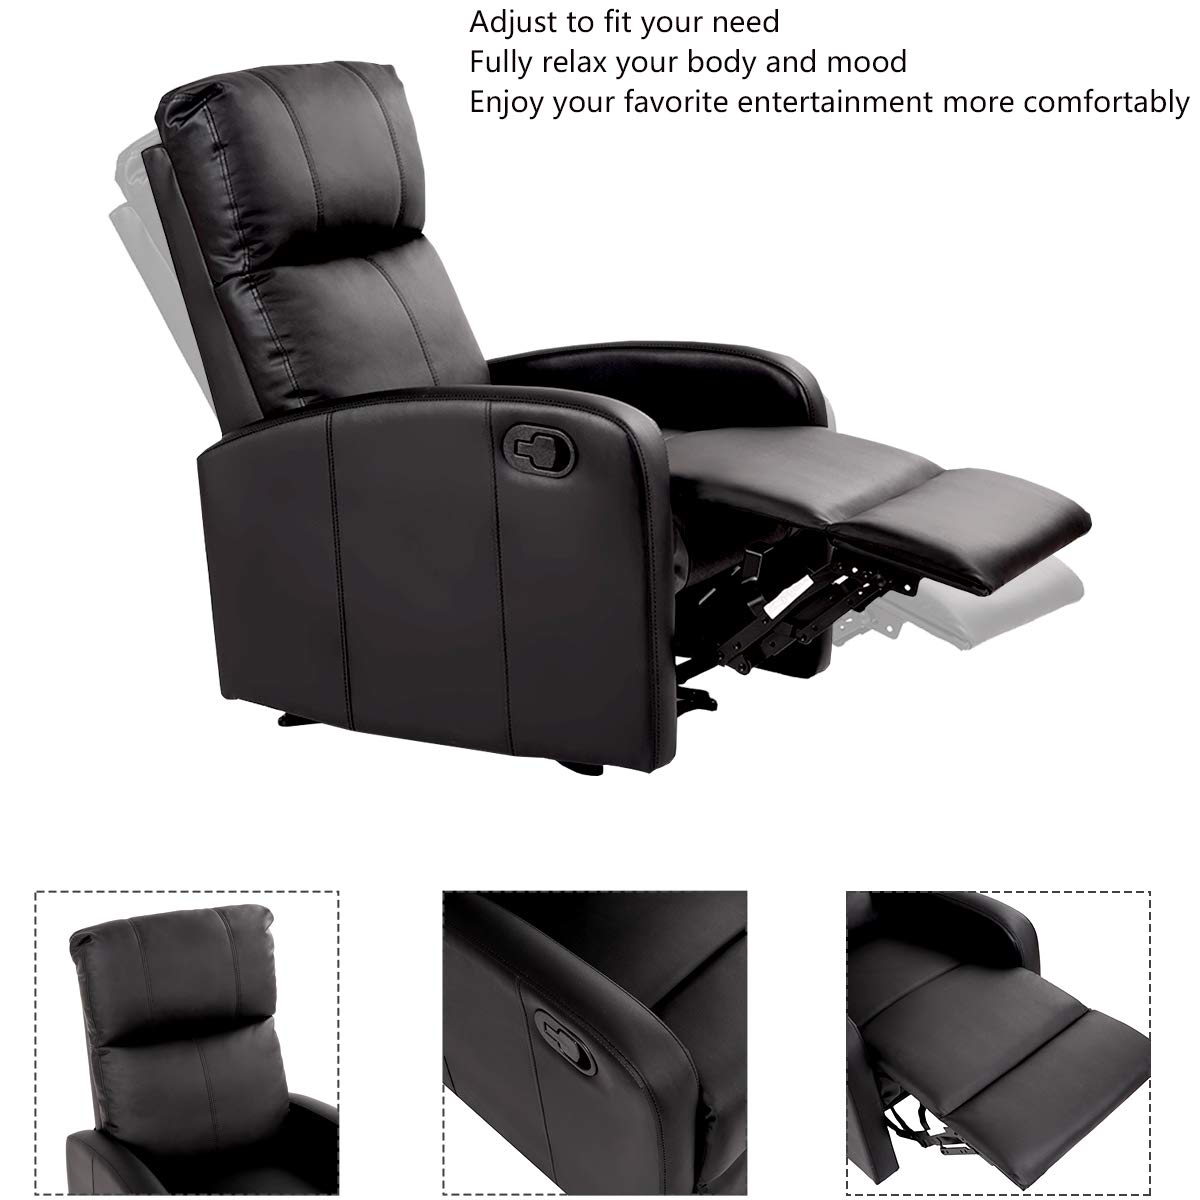 Giantex modern leather recliner chair pushback single padded seating chaise couch manual reclining living room furniture home theater ergonomic lounger sofa